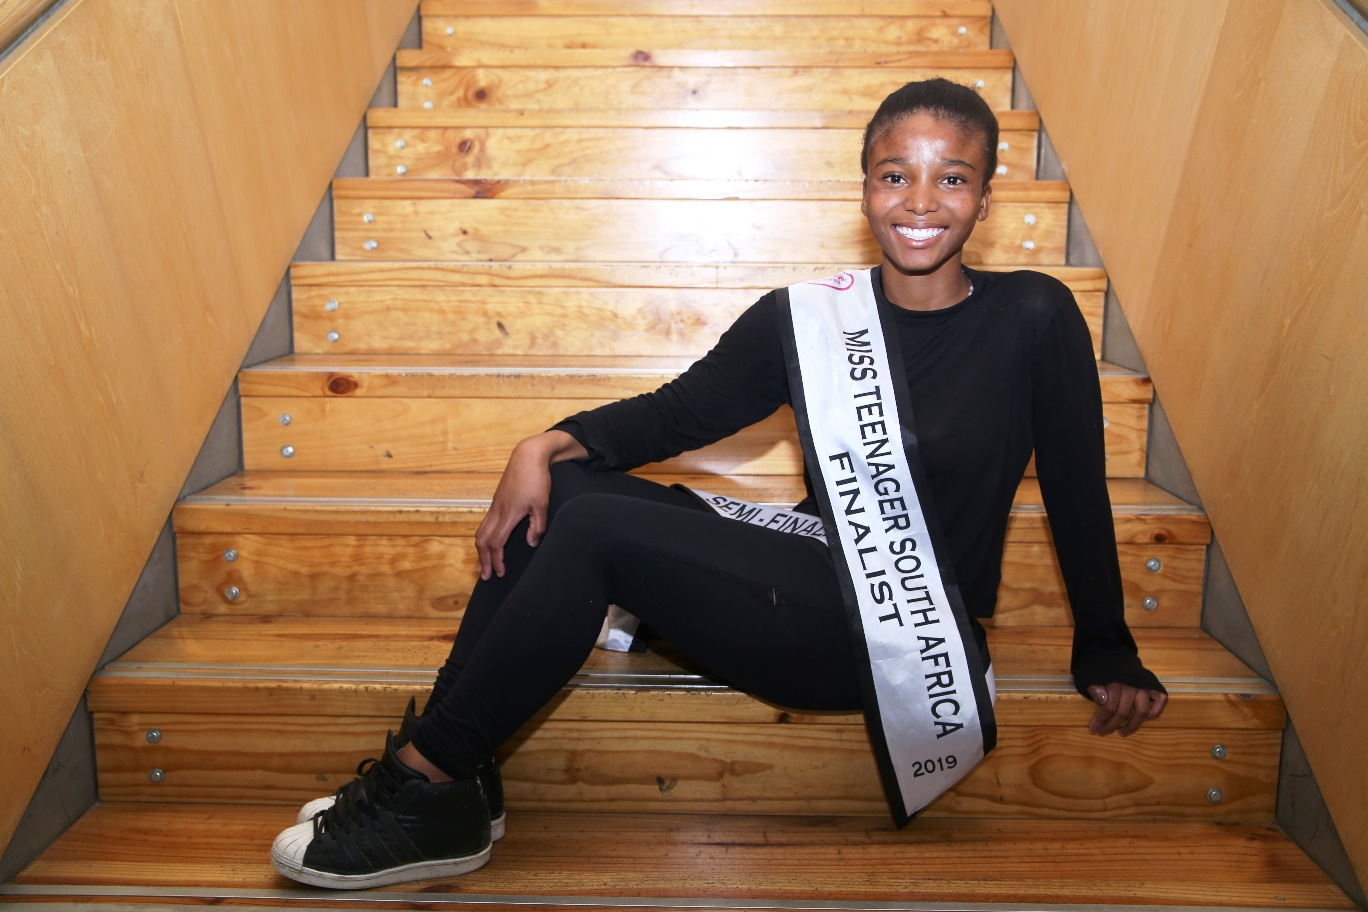 West Coast College Student – Finalist for Miss Teenager South Africa